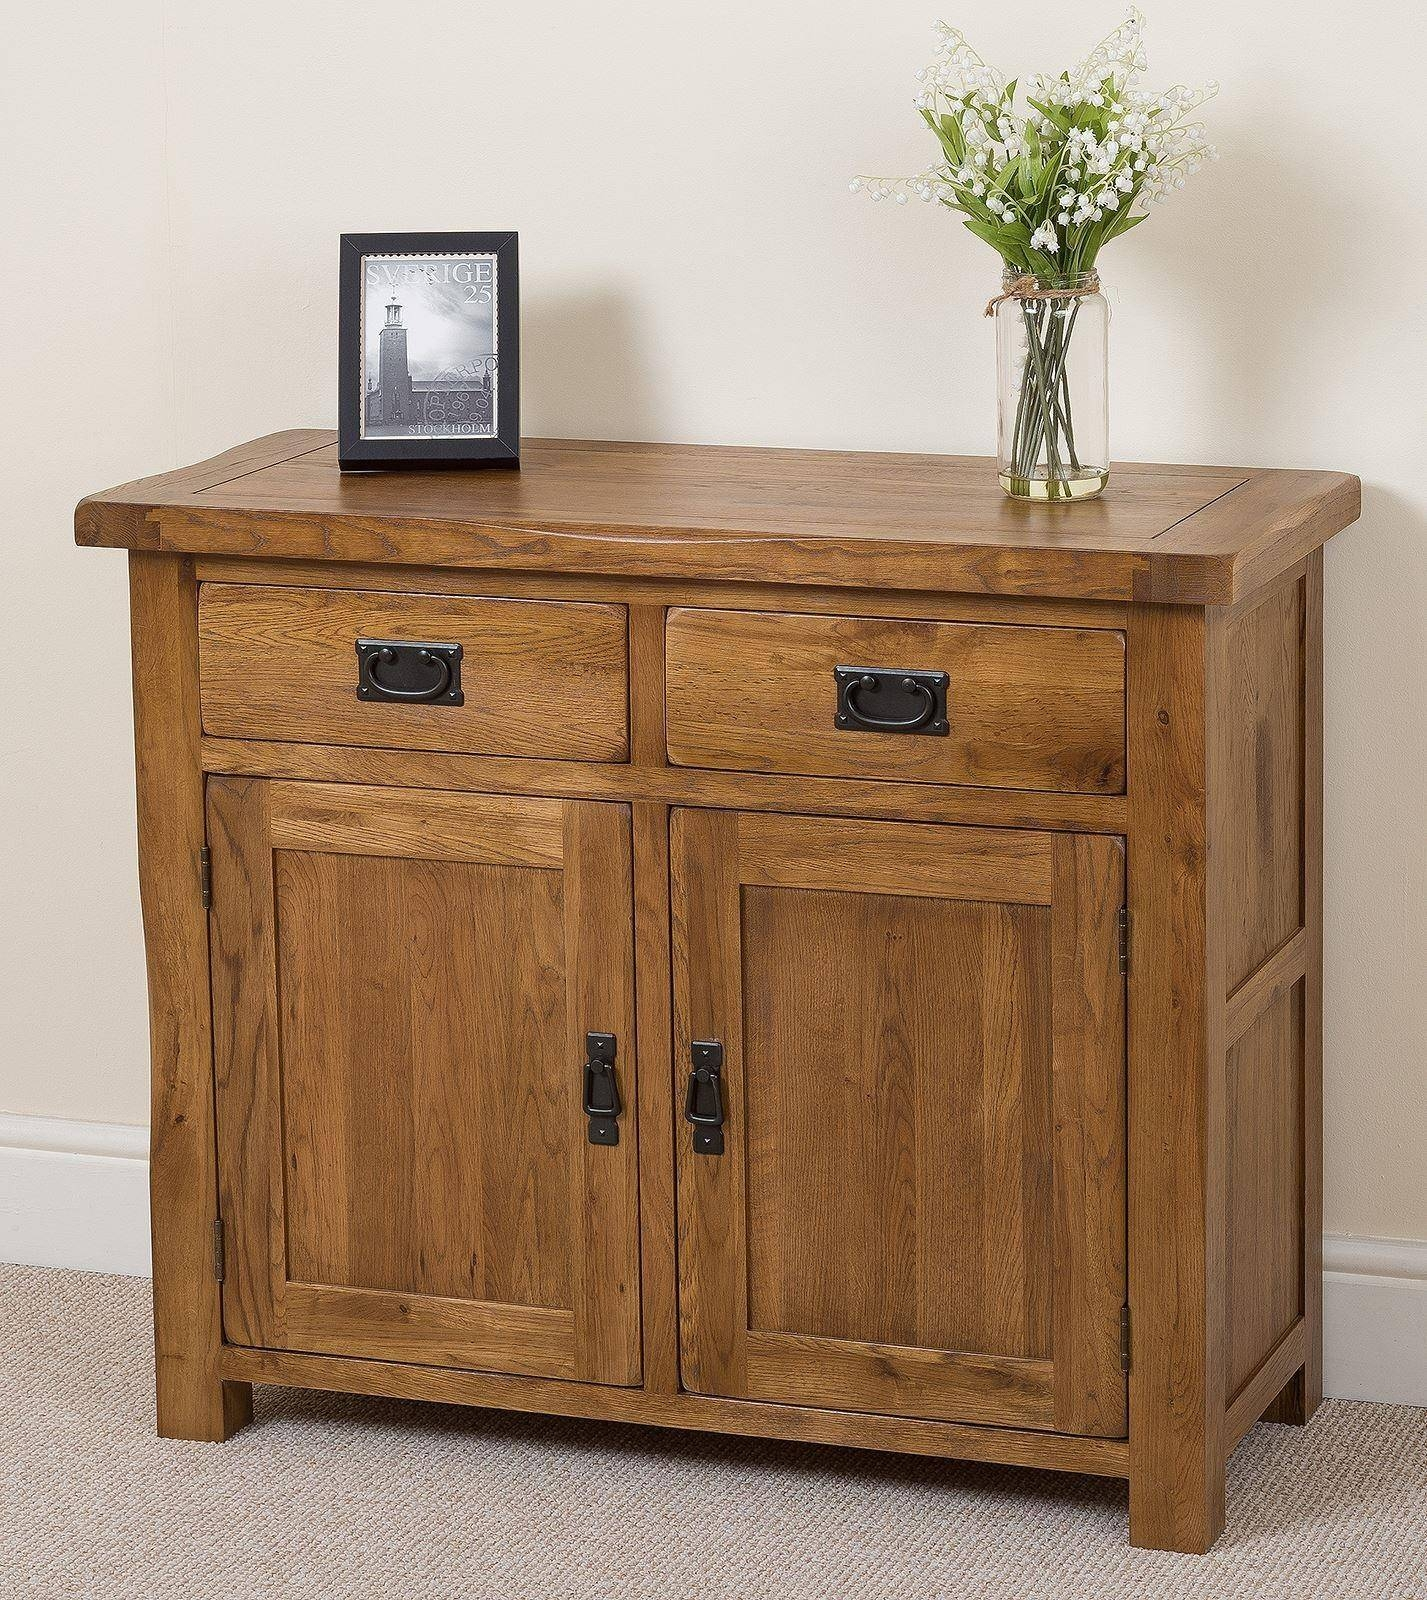 Cotswold Rustic Small Oak Sideboard | Free Uk Delivery intended for Solid Oak Sideboards (Image 4 of 15)